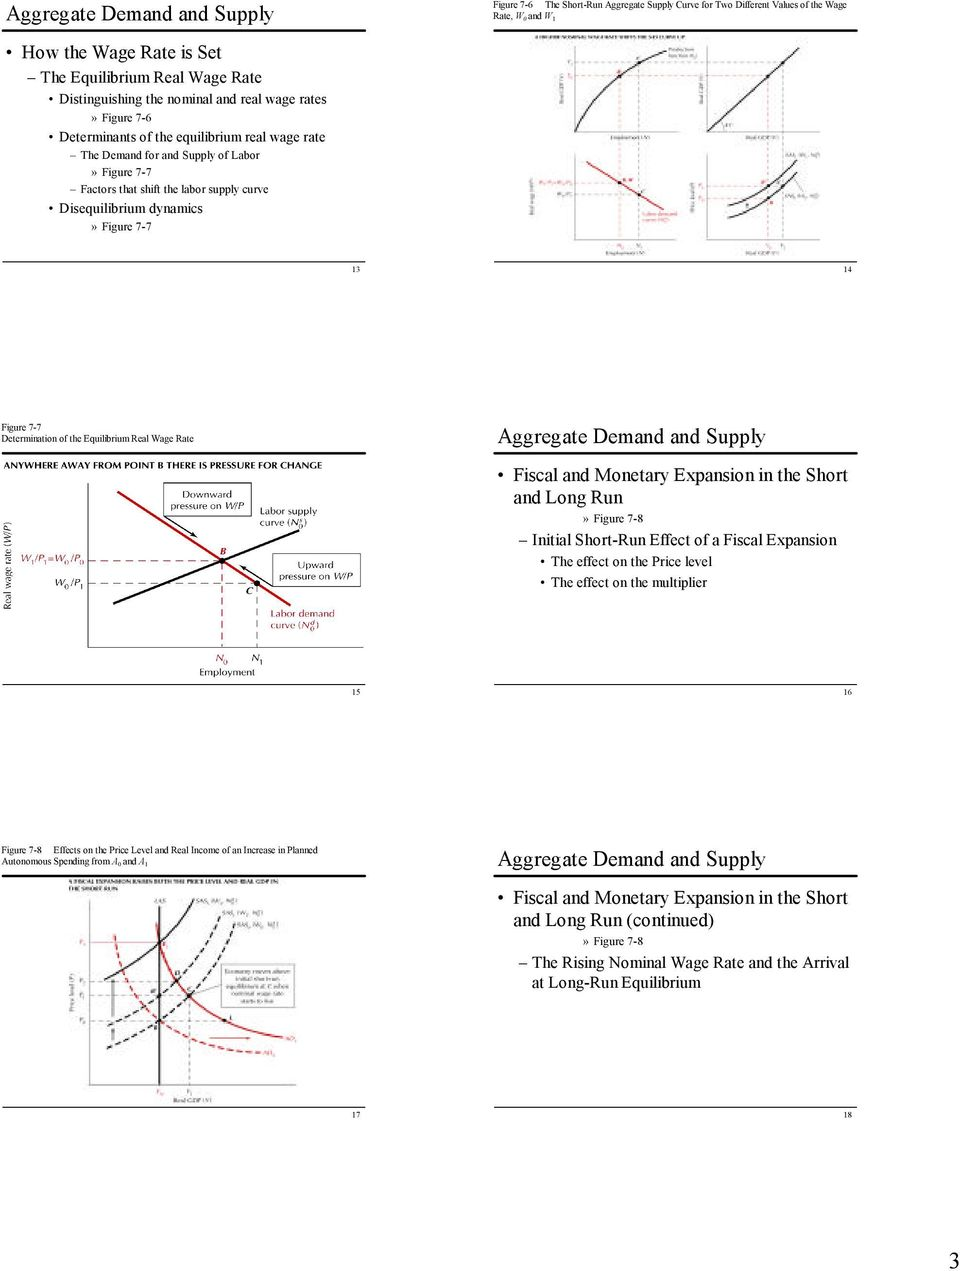 Figure 7-7 Determination of the Equilibrium Real Wage Rate and Long Run» Figure 7-8 Initial Short-Run Effect of a Fiscal Expansion The effect on the Price level The effect on the multiplier 15 16